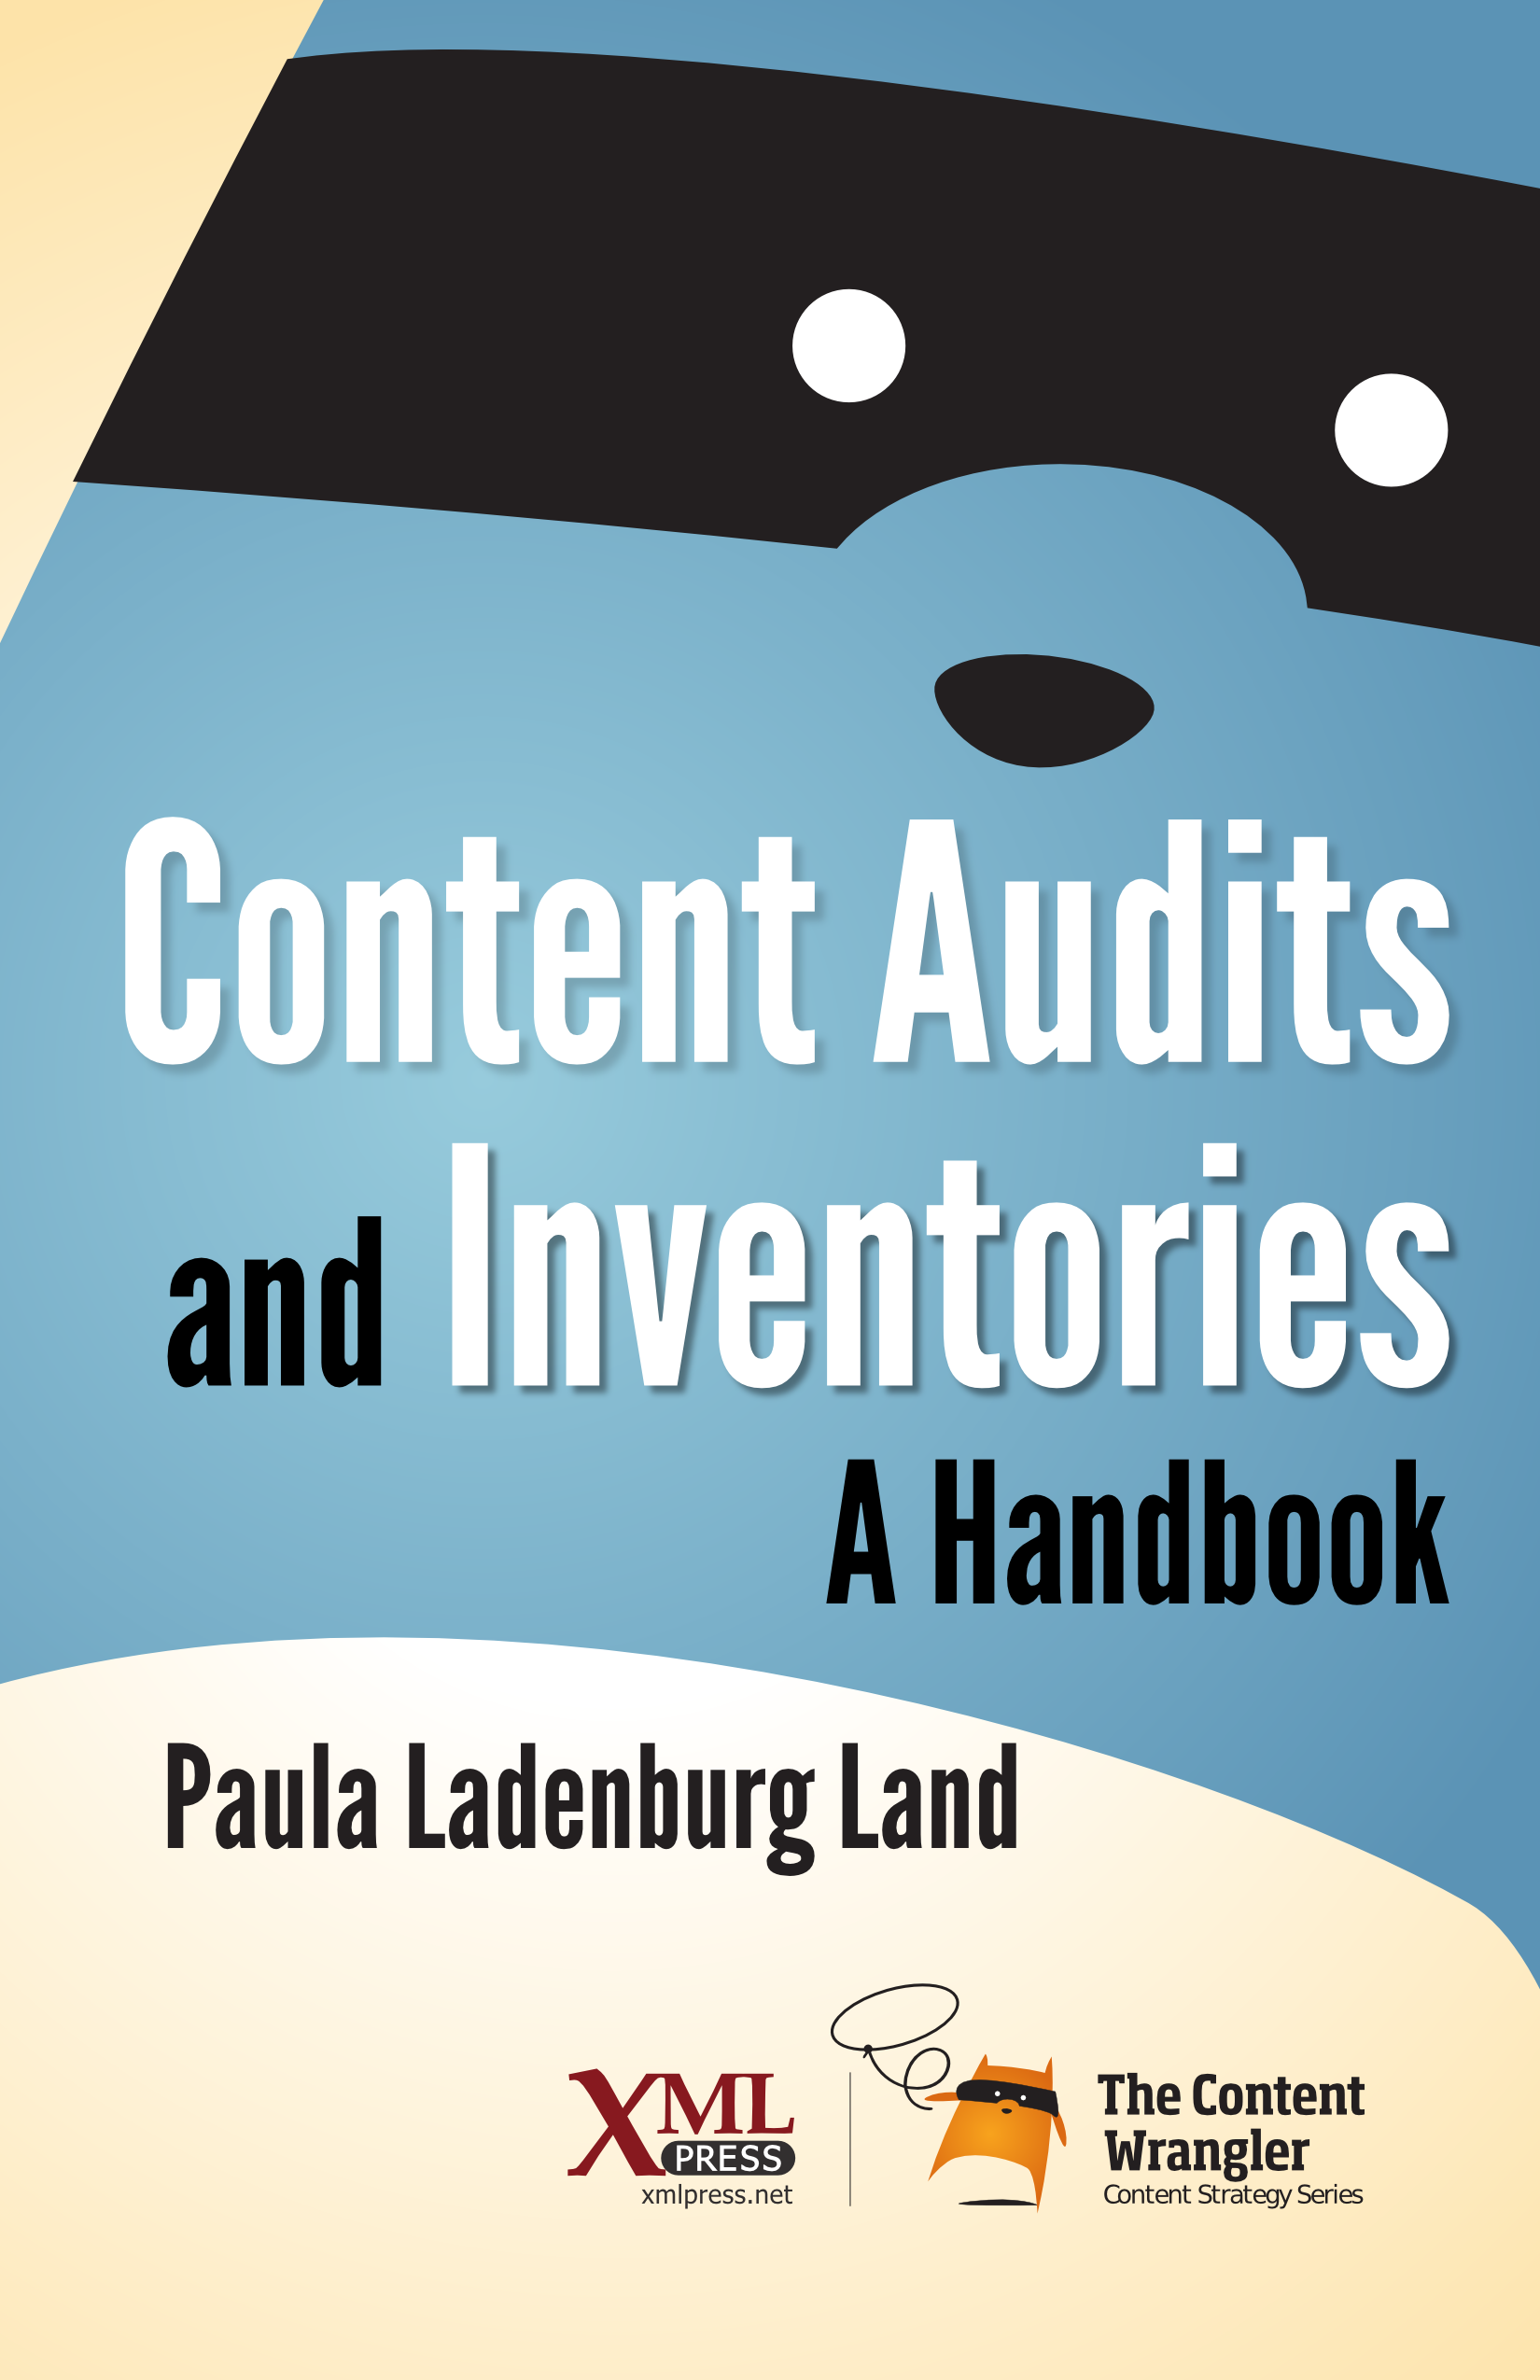 Content Audits and Inventories: A Handbook by Paula Ladenburg Land Content Audits and Inventories, by veteran content strategist Paula Land, shows you how to begin with an inventory, scope and plan an audit, evaluate content against business and user goals, and move forward with a set of useful, actionable insights.